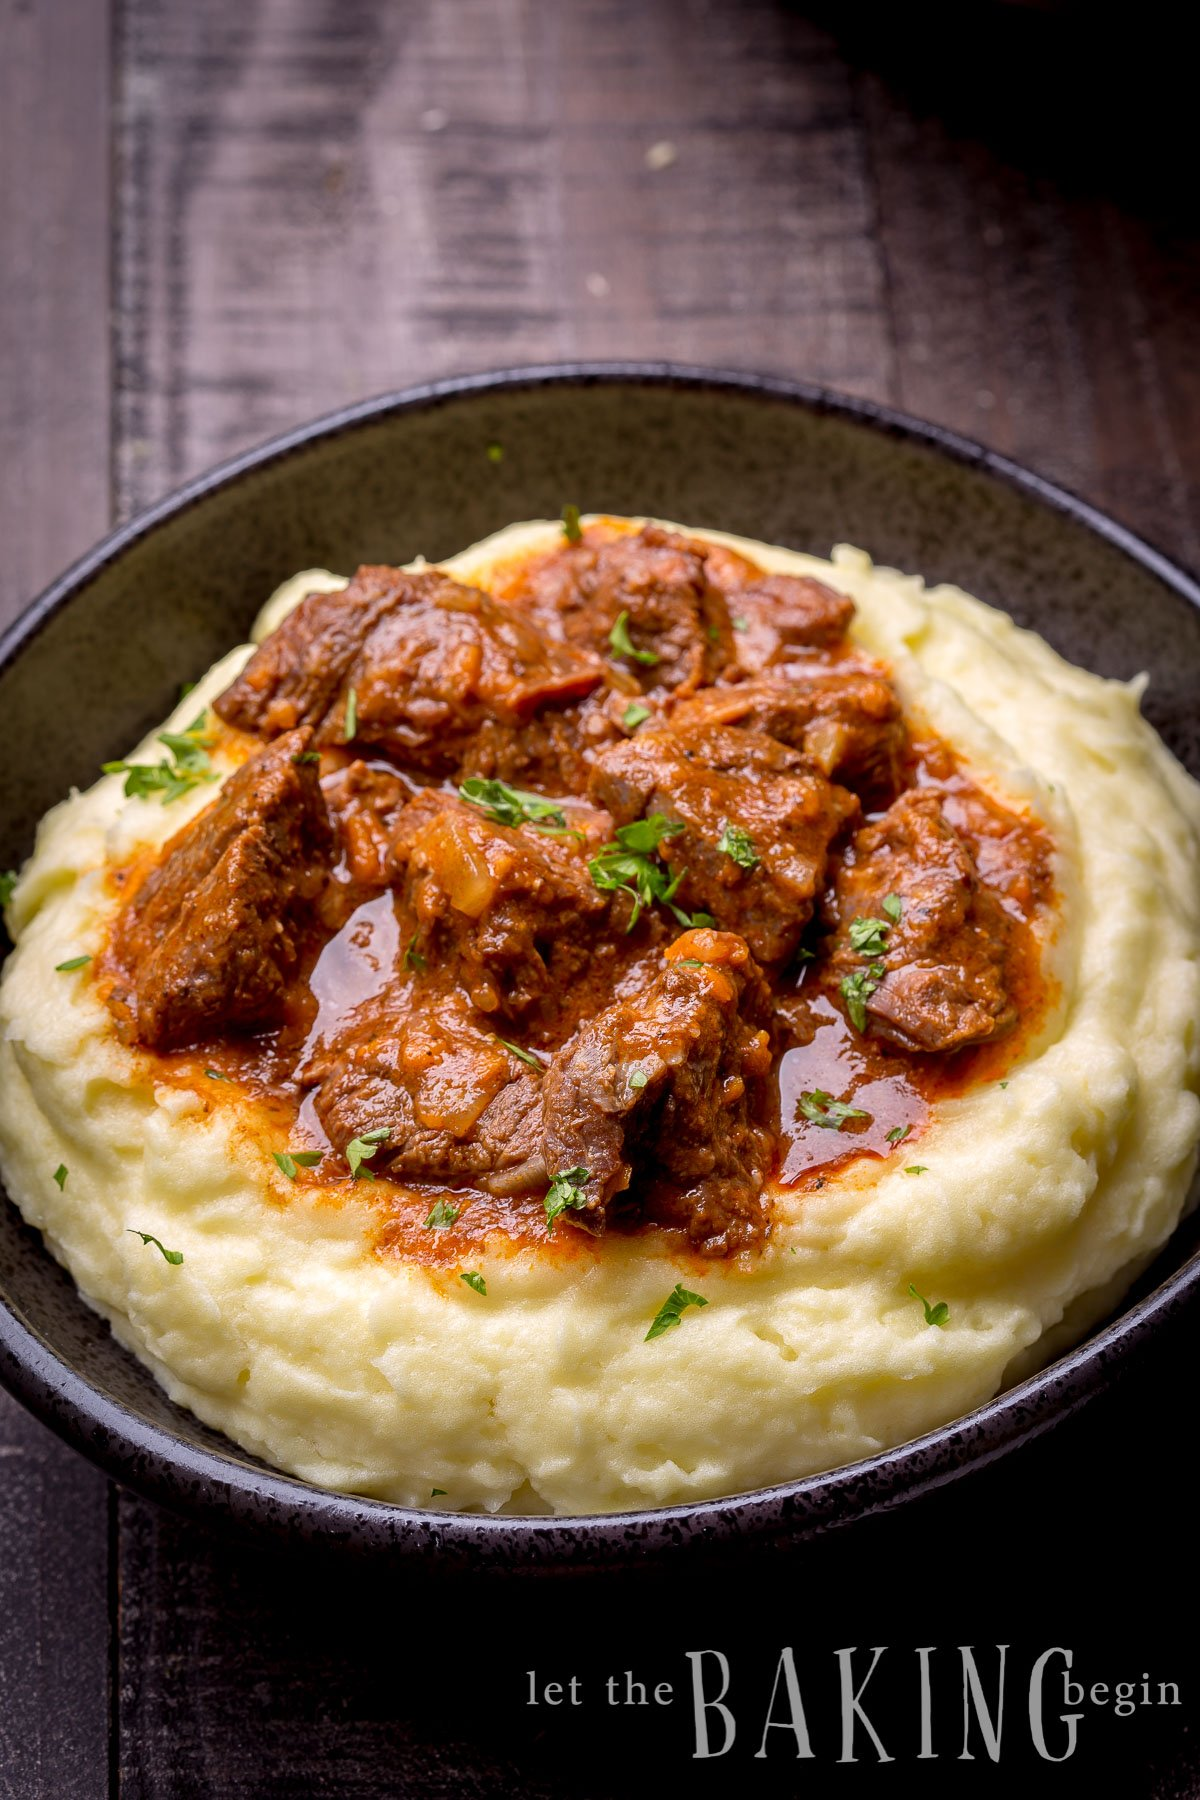 One Pot Easy Beef Stew made in an Instant Pot with Beef, Onions, Carrots, Tomato Sauce and Spices. No fancy ingredients, but super delicious! Serve with Mashed Potatoes, Rice or Pasta and you'll have the ultimate comfort food dinner experience!